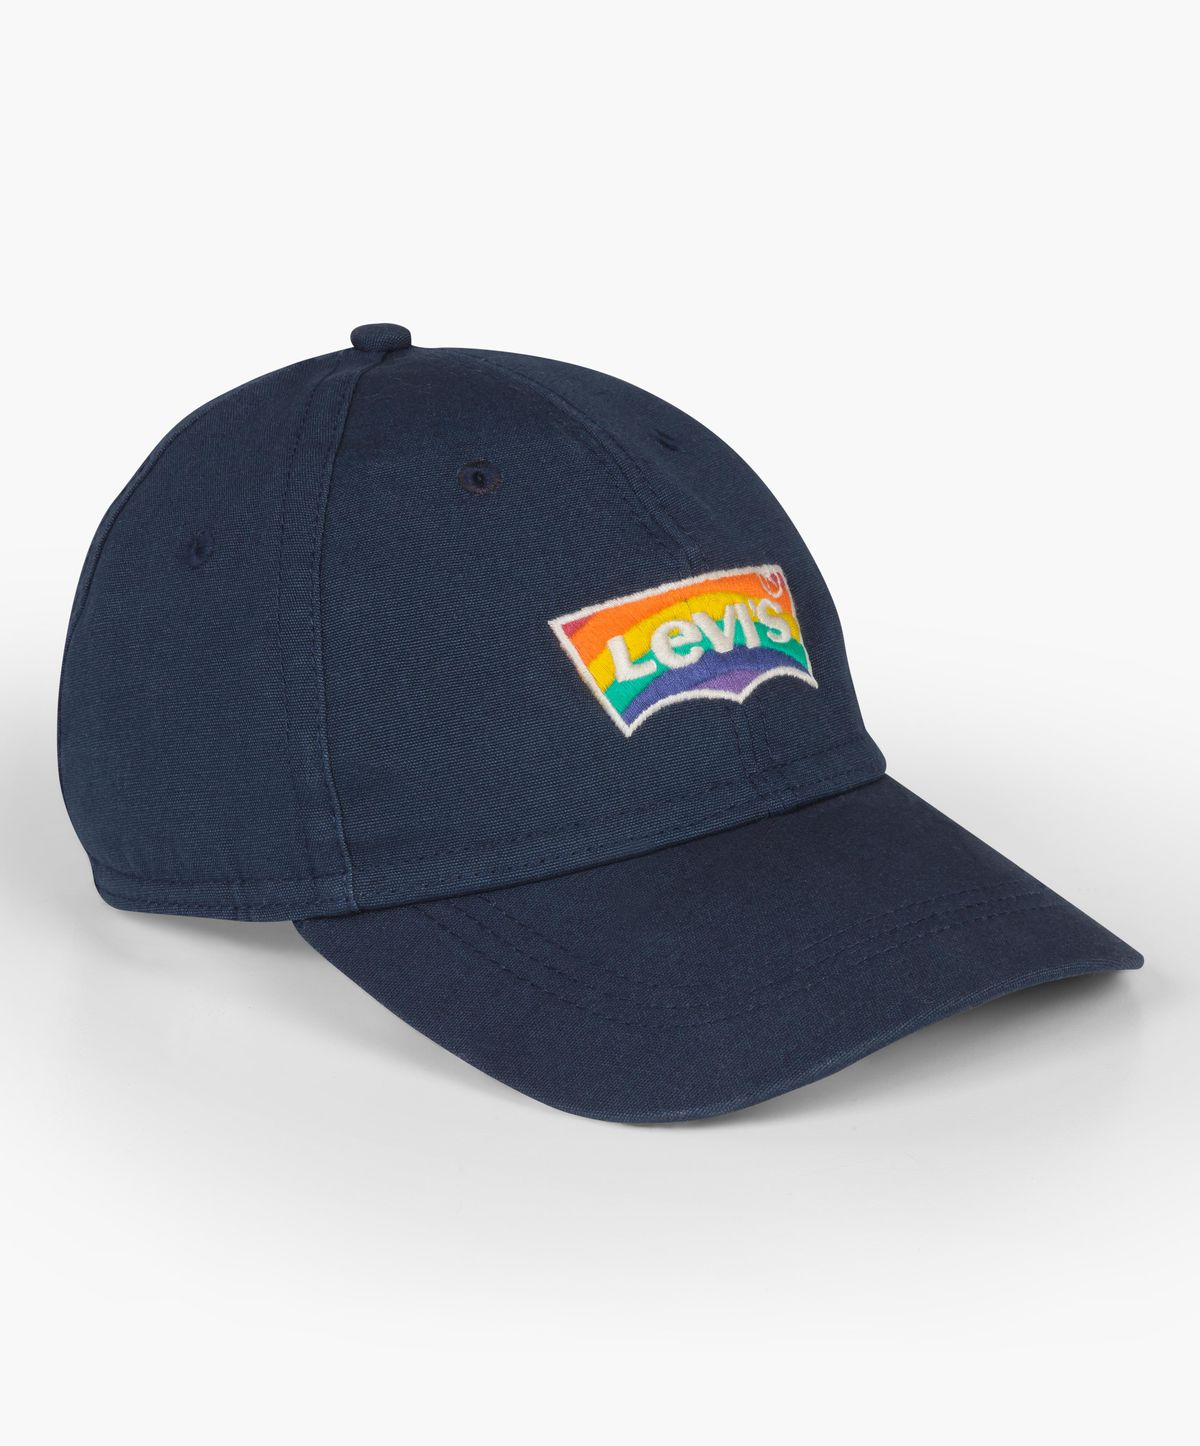 ca6a15d6387848 Shop Pride Collections from Adidas